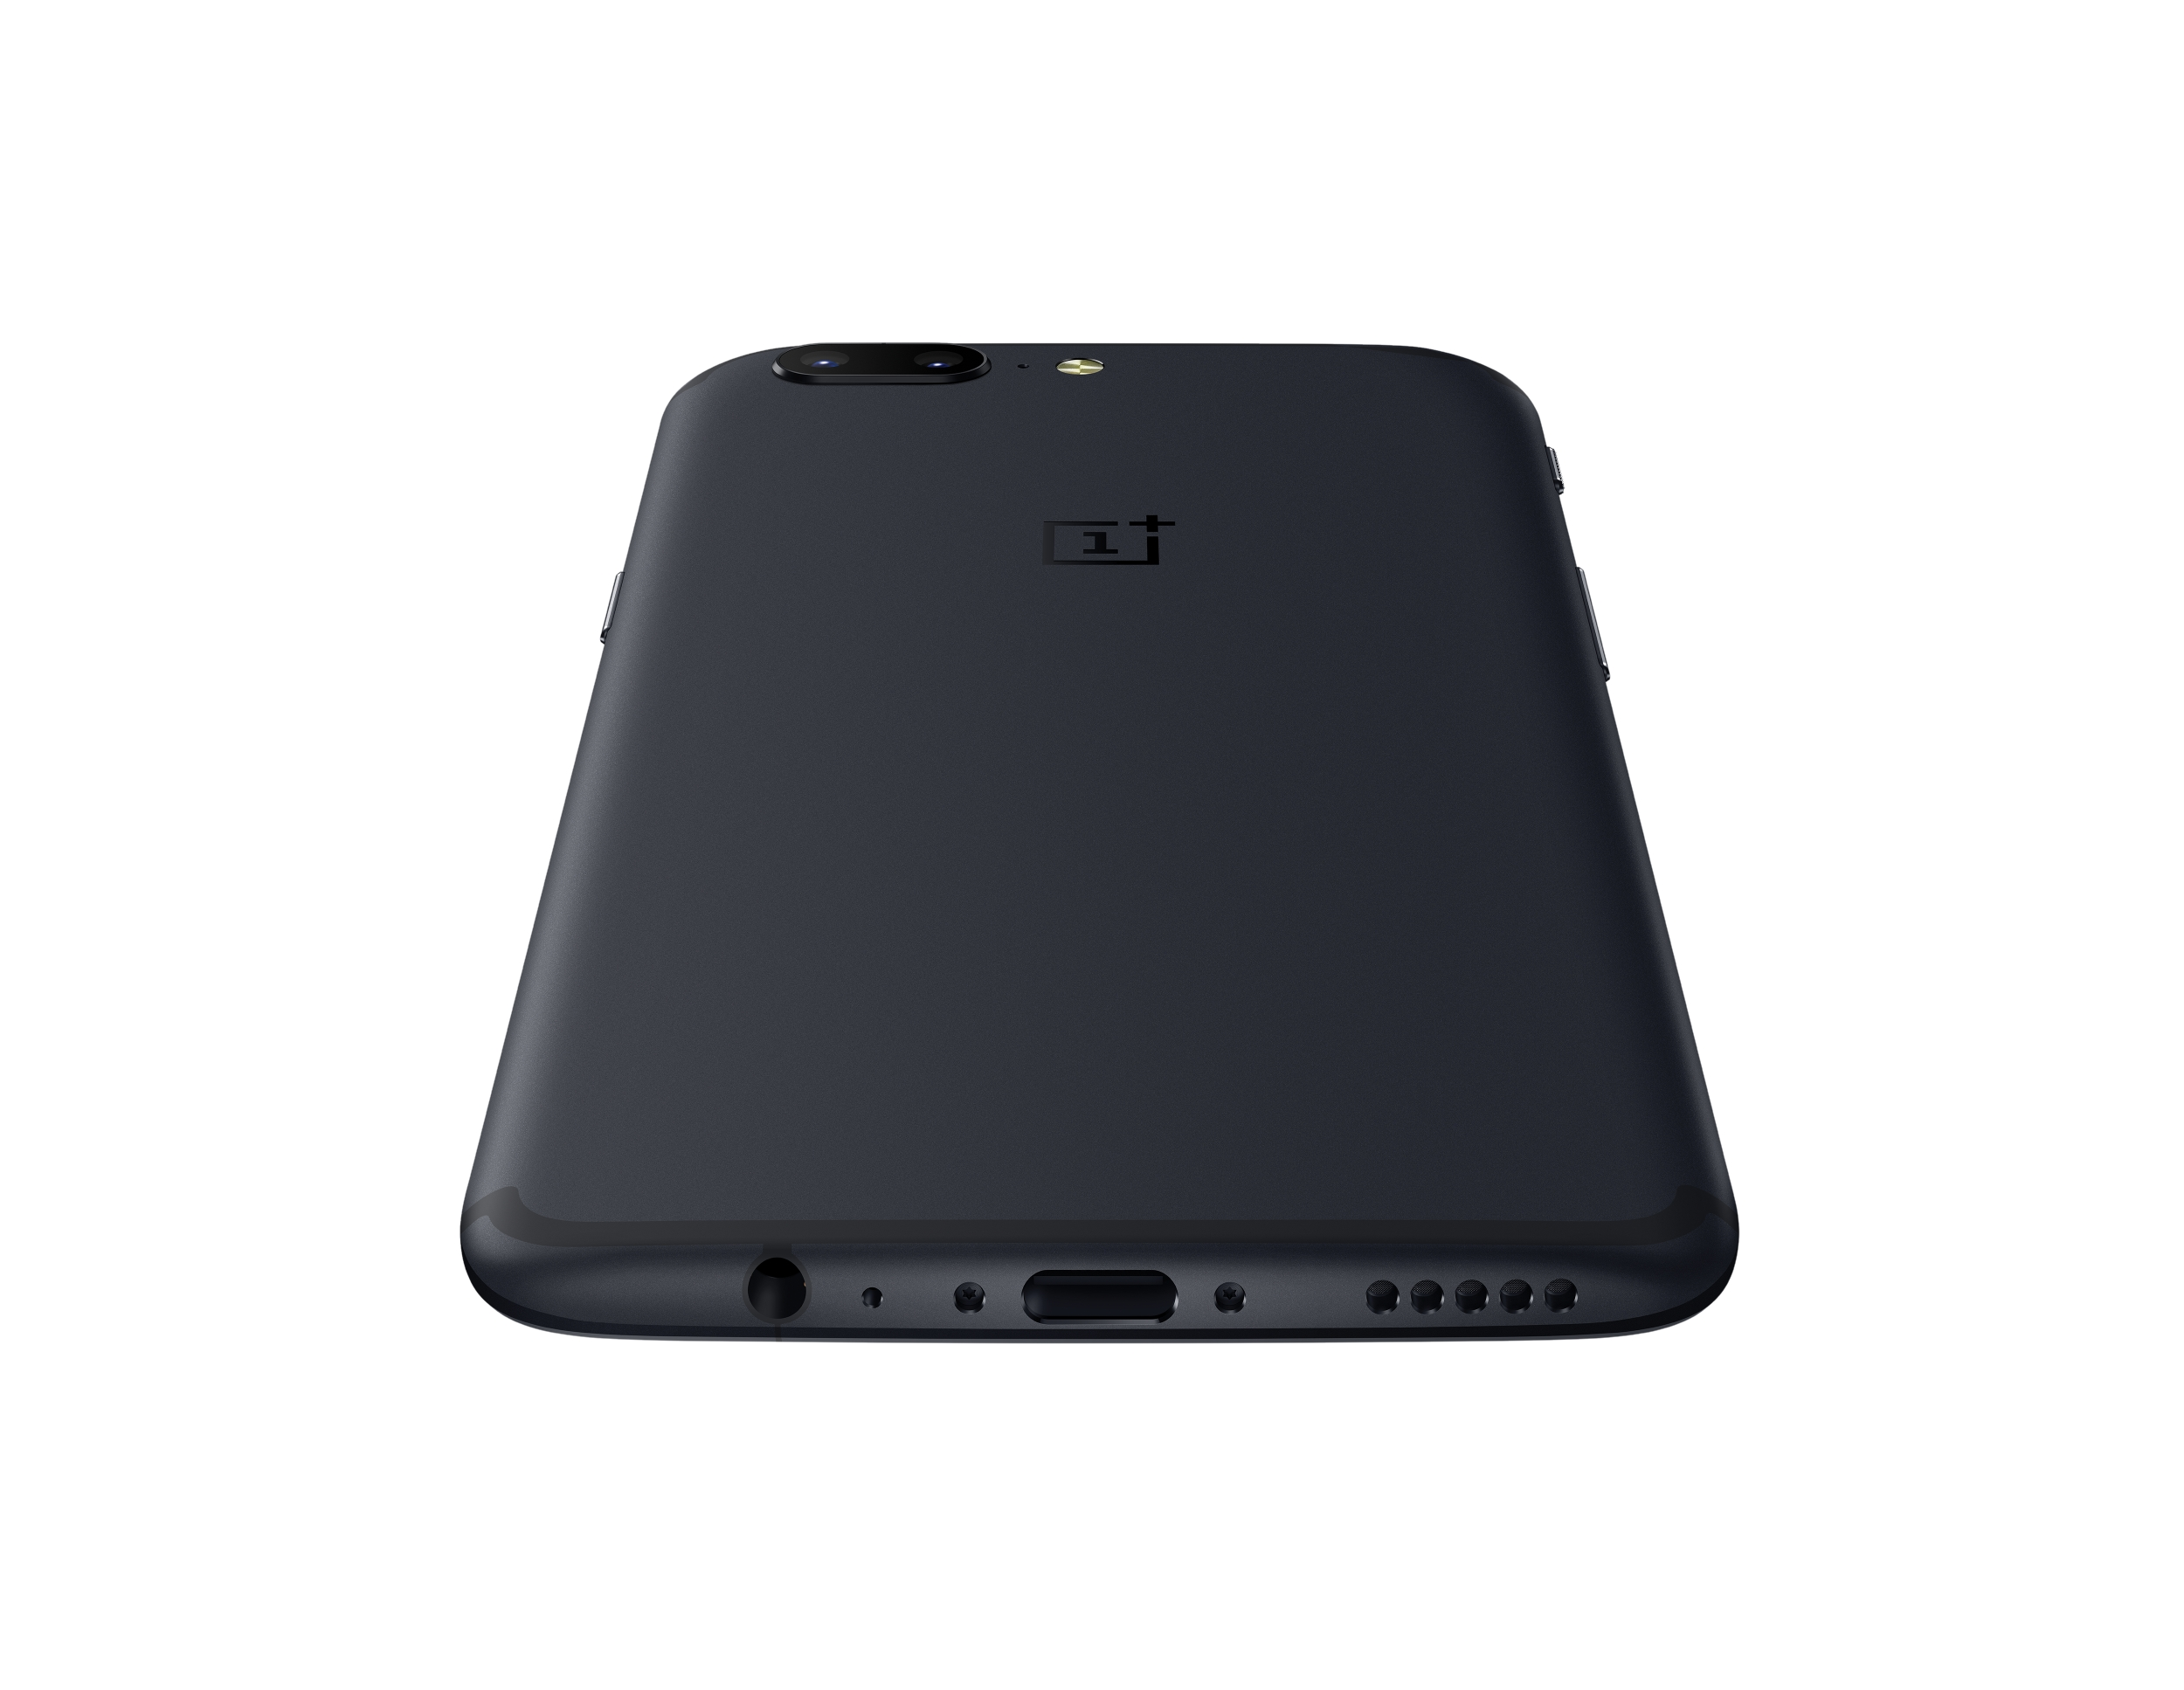 OnePlus-5---all-the-official-images (2).jpg